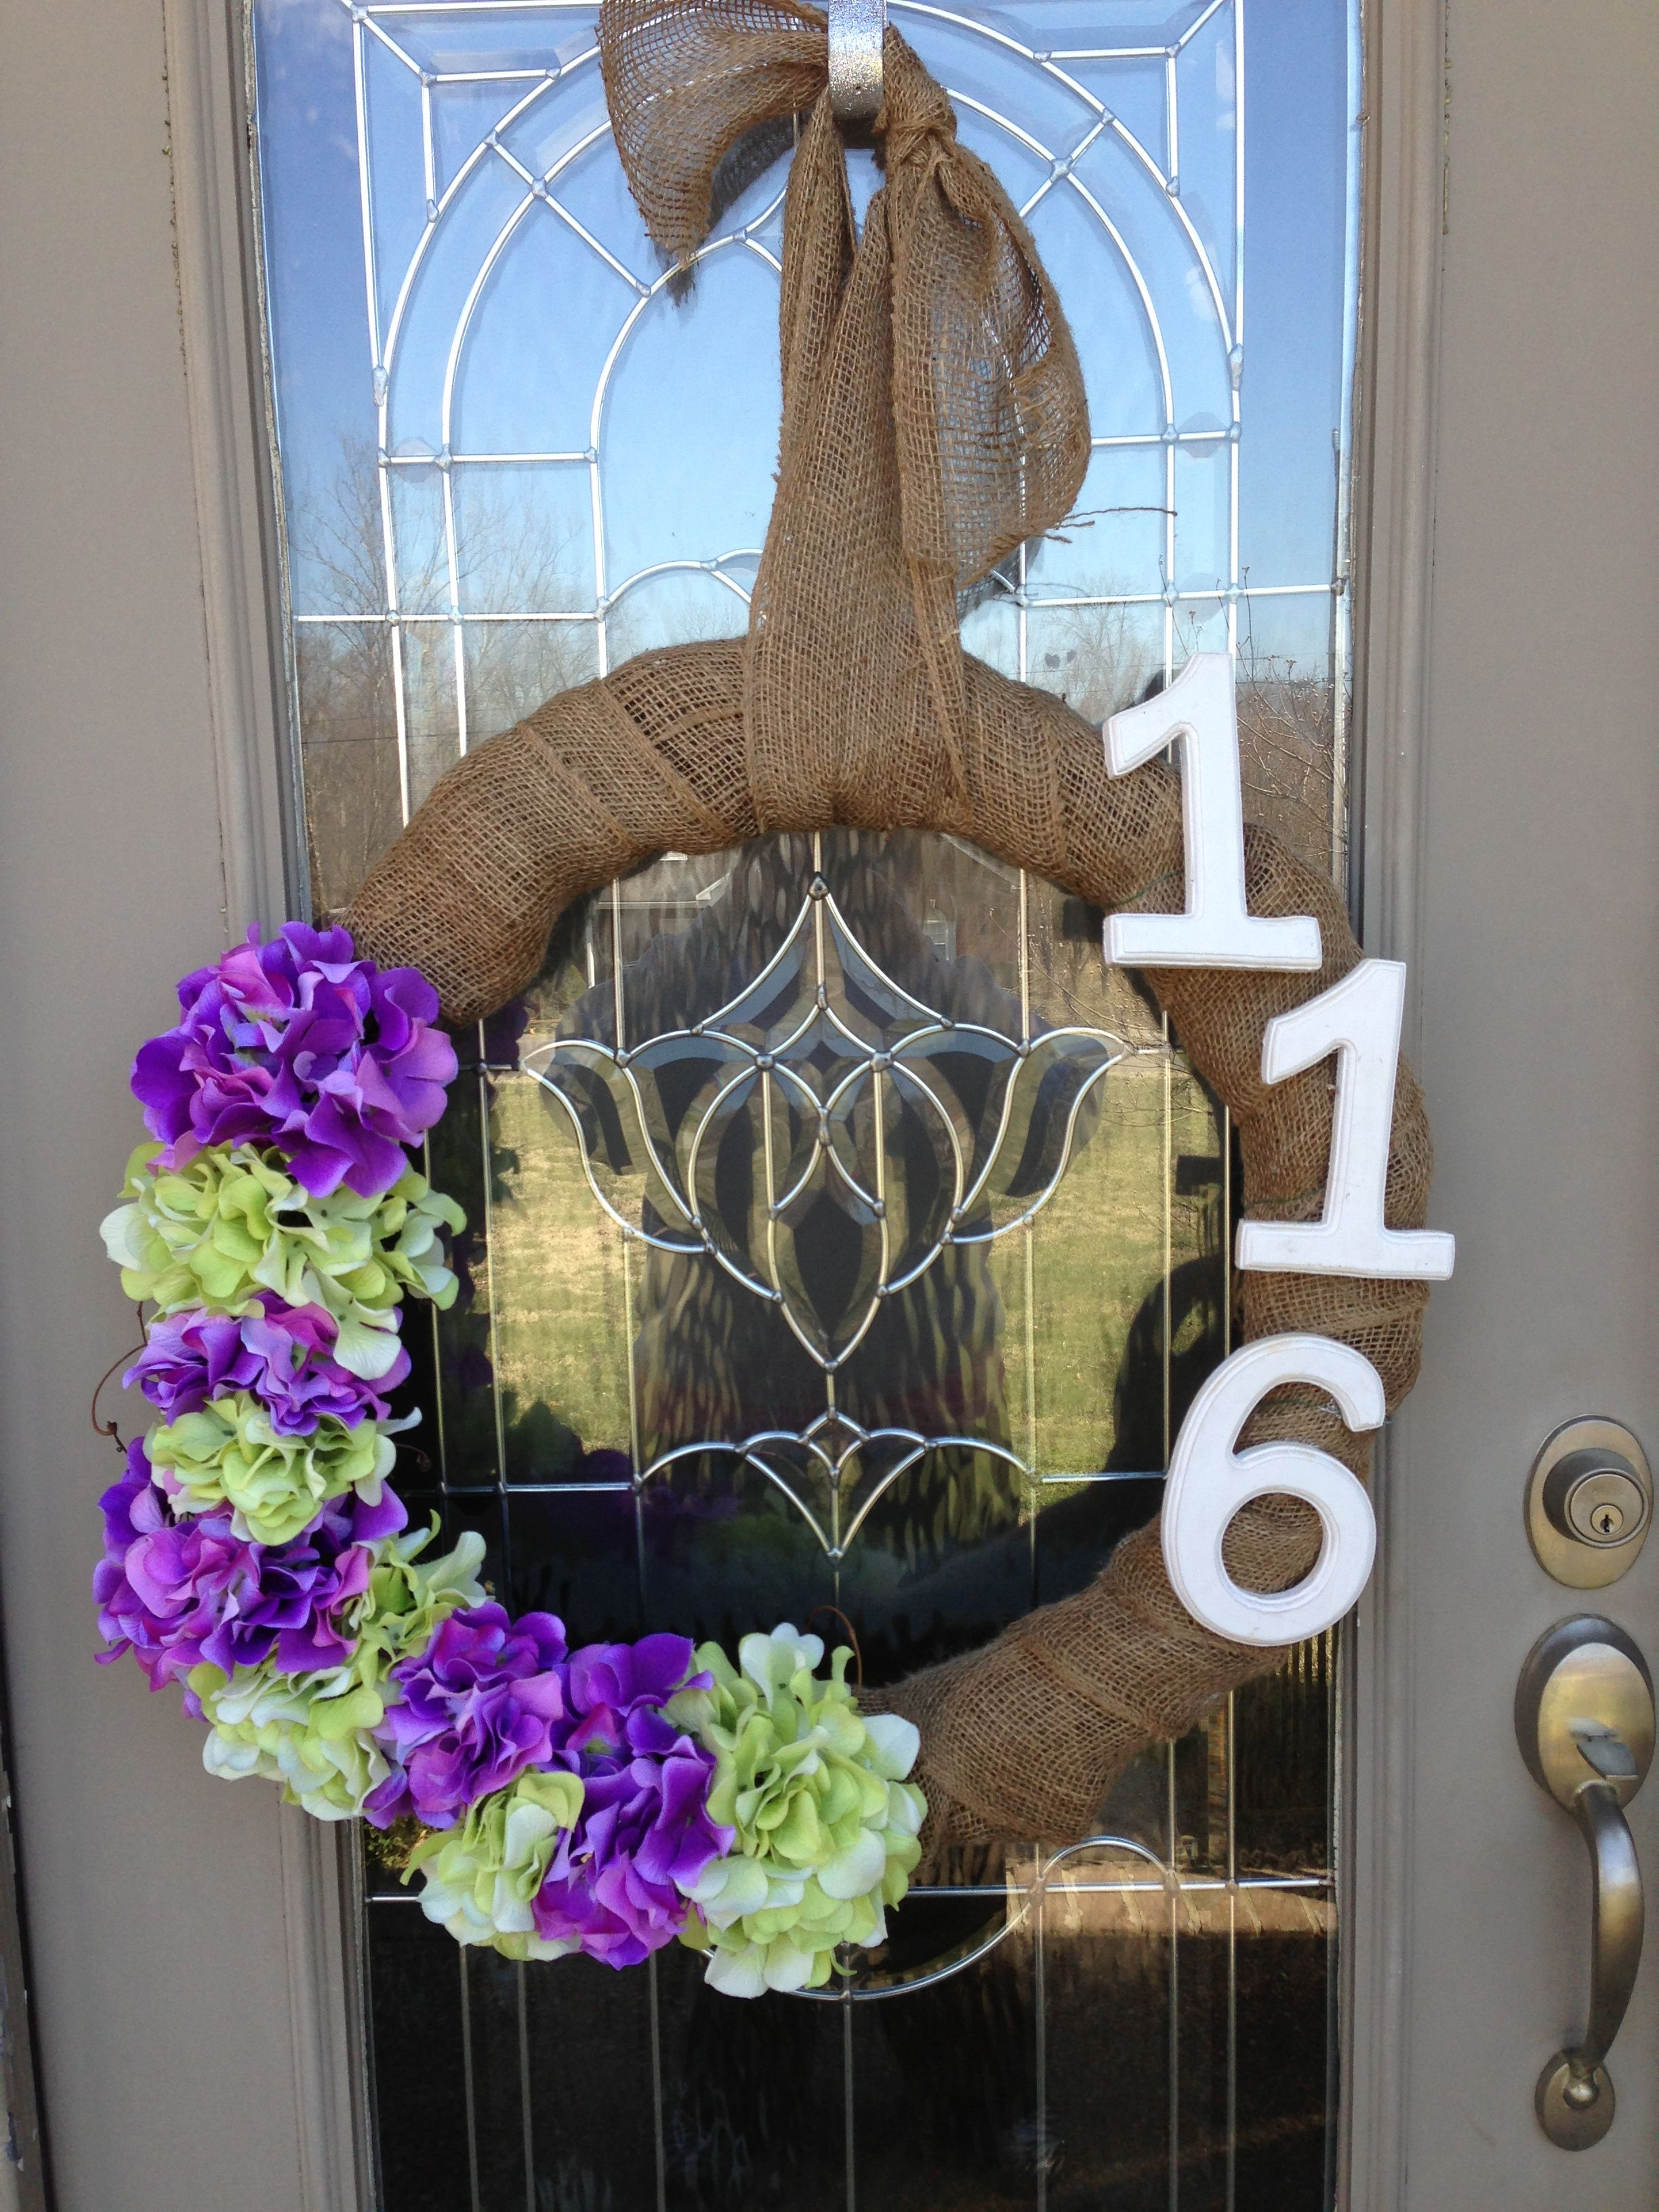 Homemade personalized wreath! Super easy to make one for yourself, approximate cost $30 if you buy the supplies at Joann's without coupons.